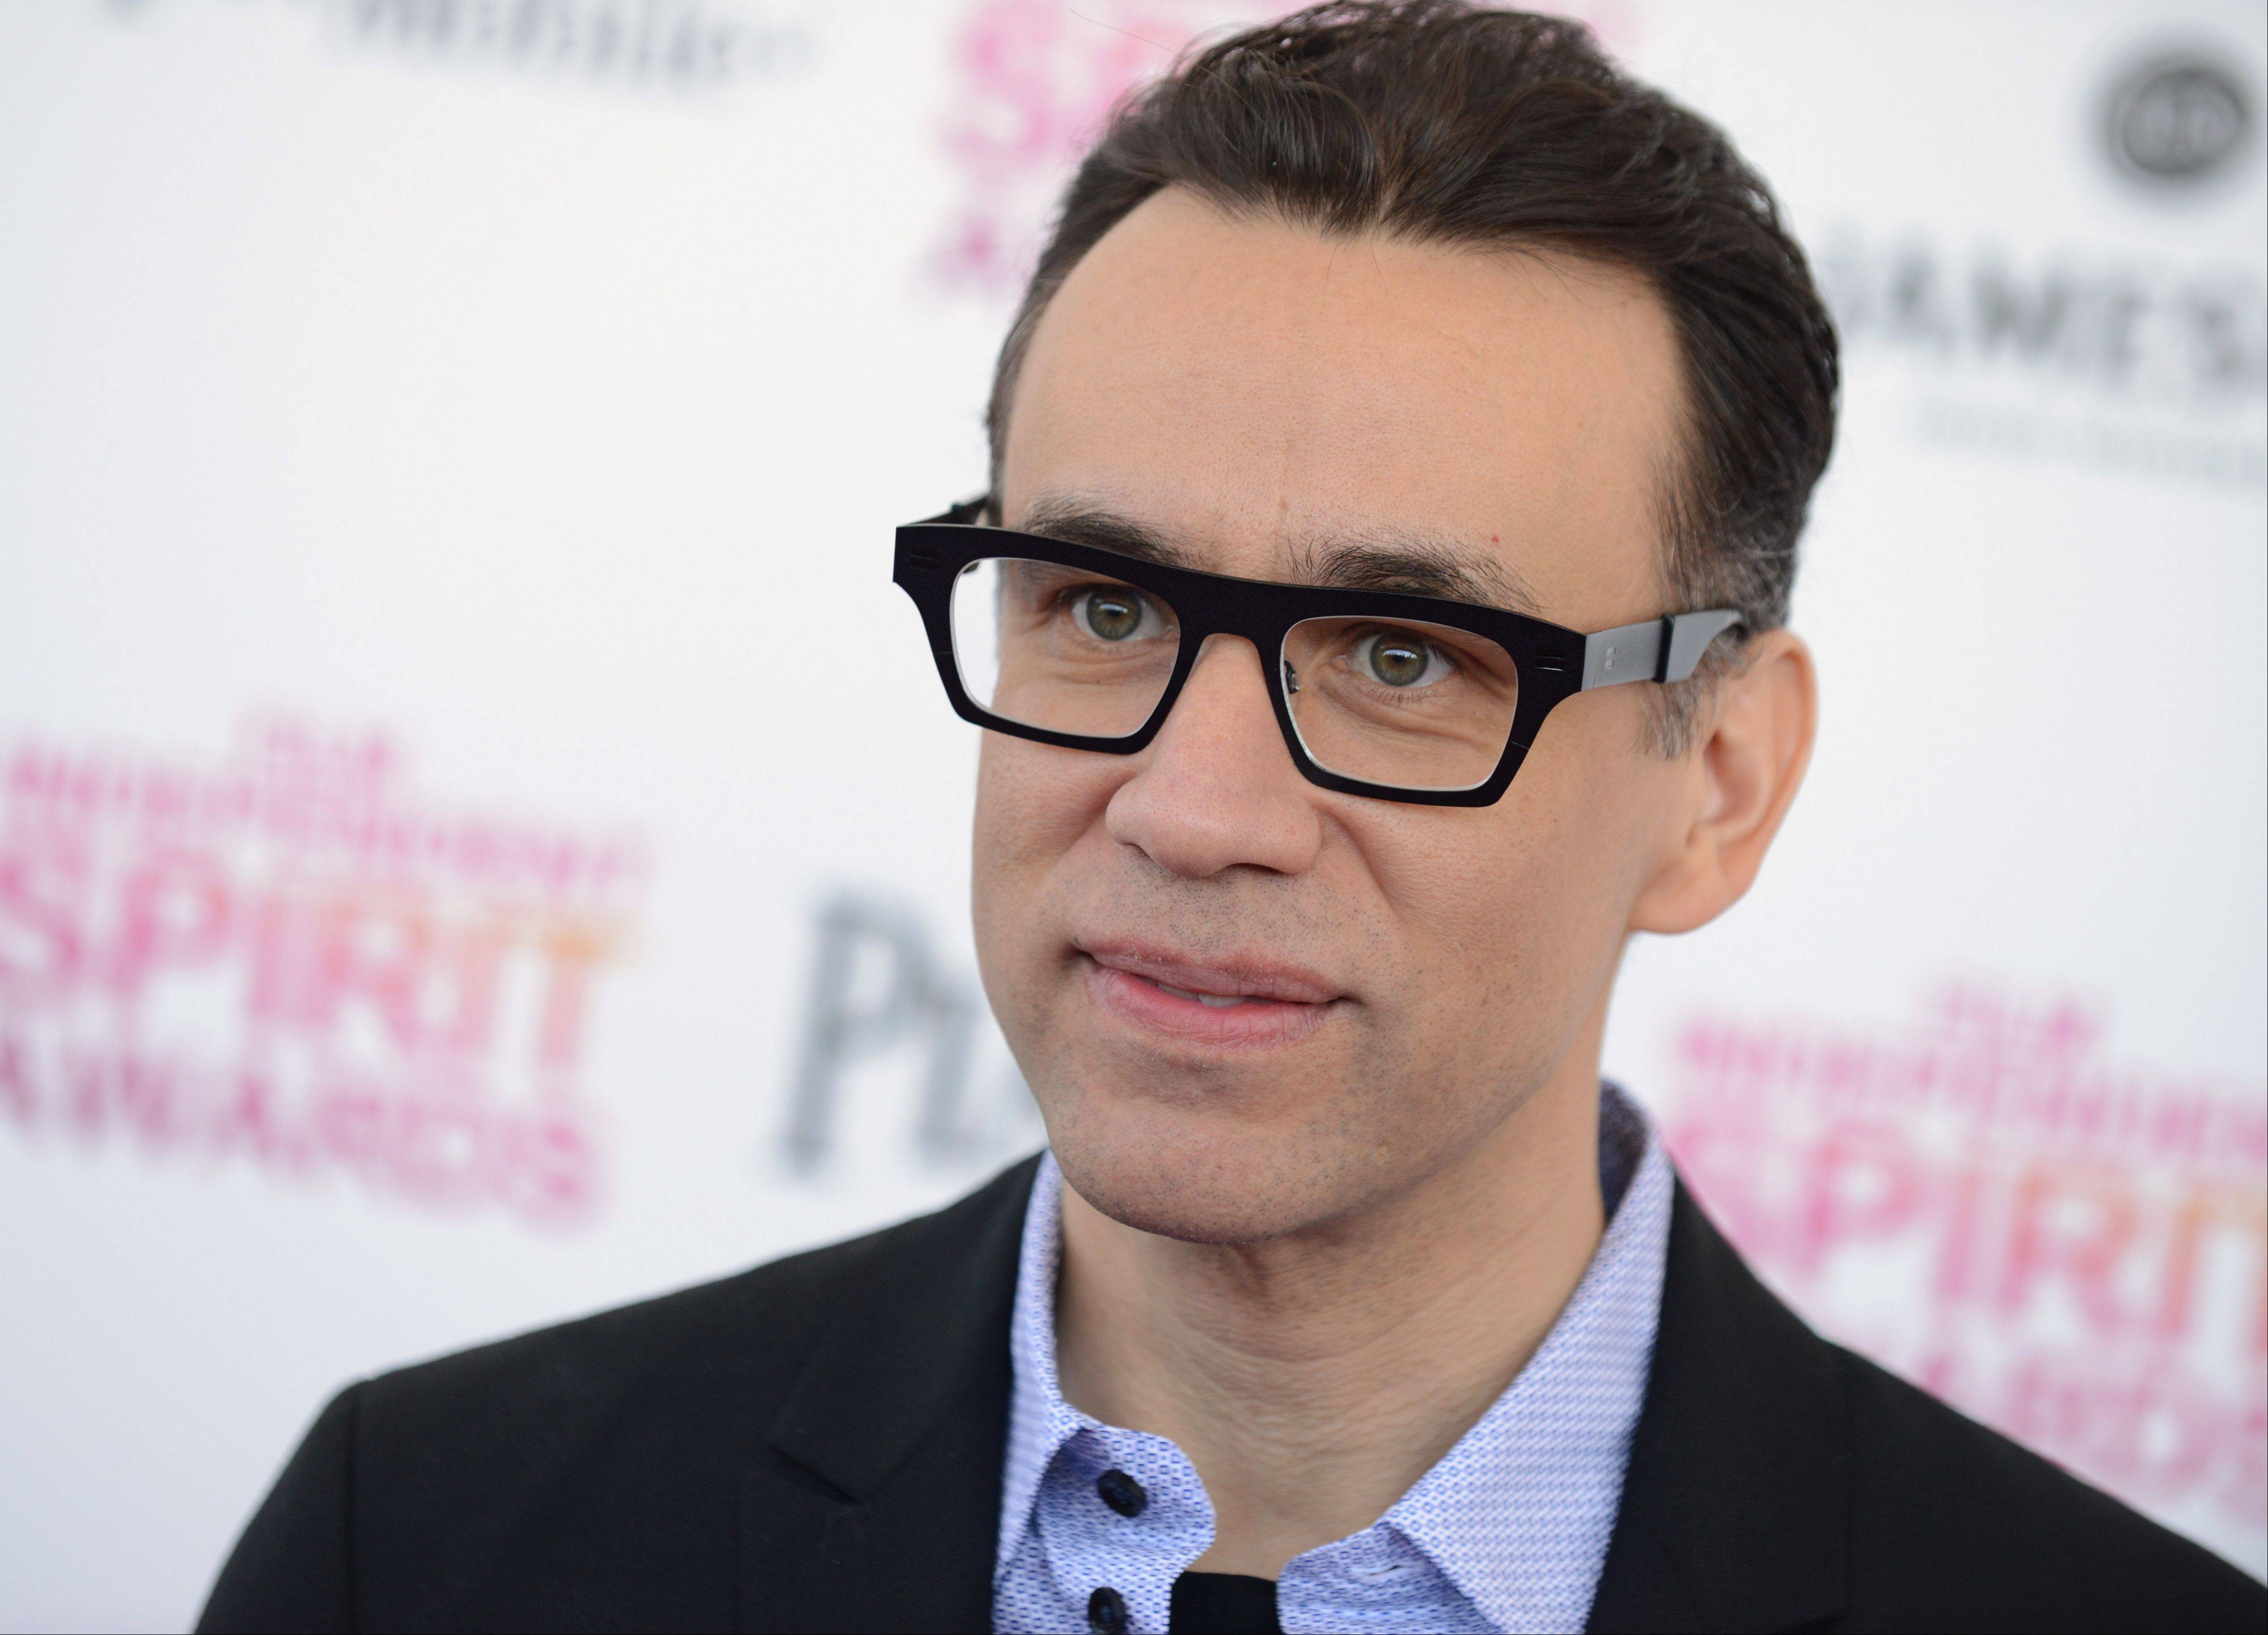 Fred Armisen has confirmed that he has left �Saturday Night Live� after 11 years. The actor dispelled any doubt about his exit in an interview posted Monday by comedy website Splitsider.